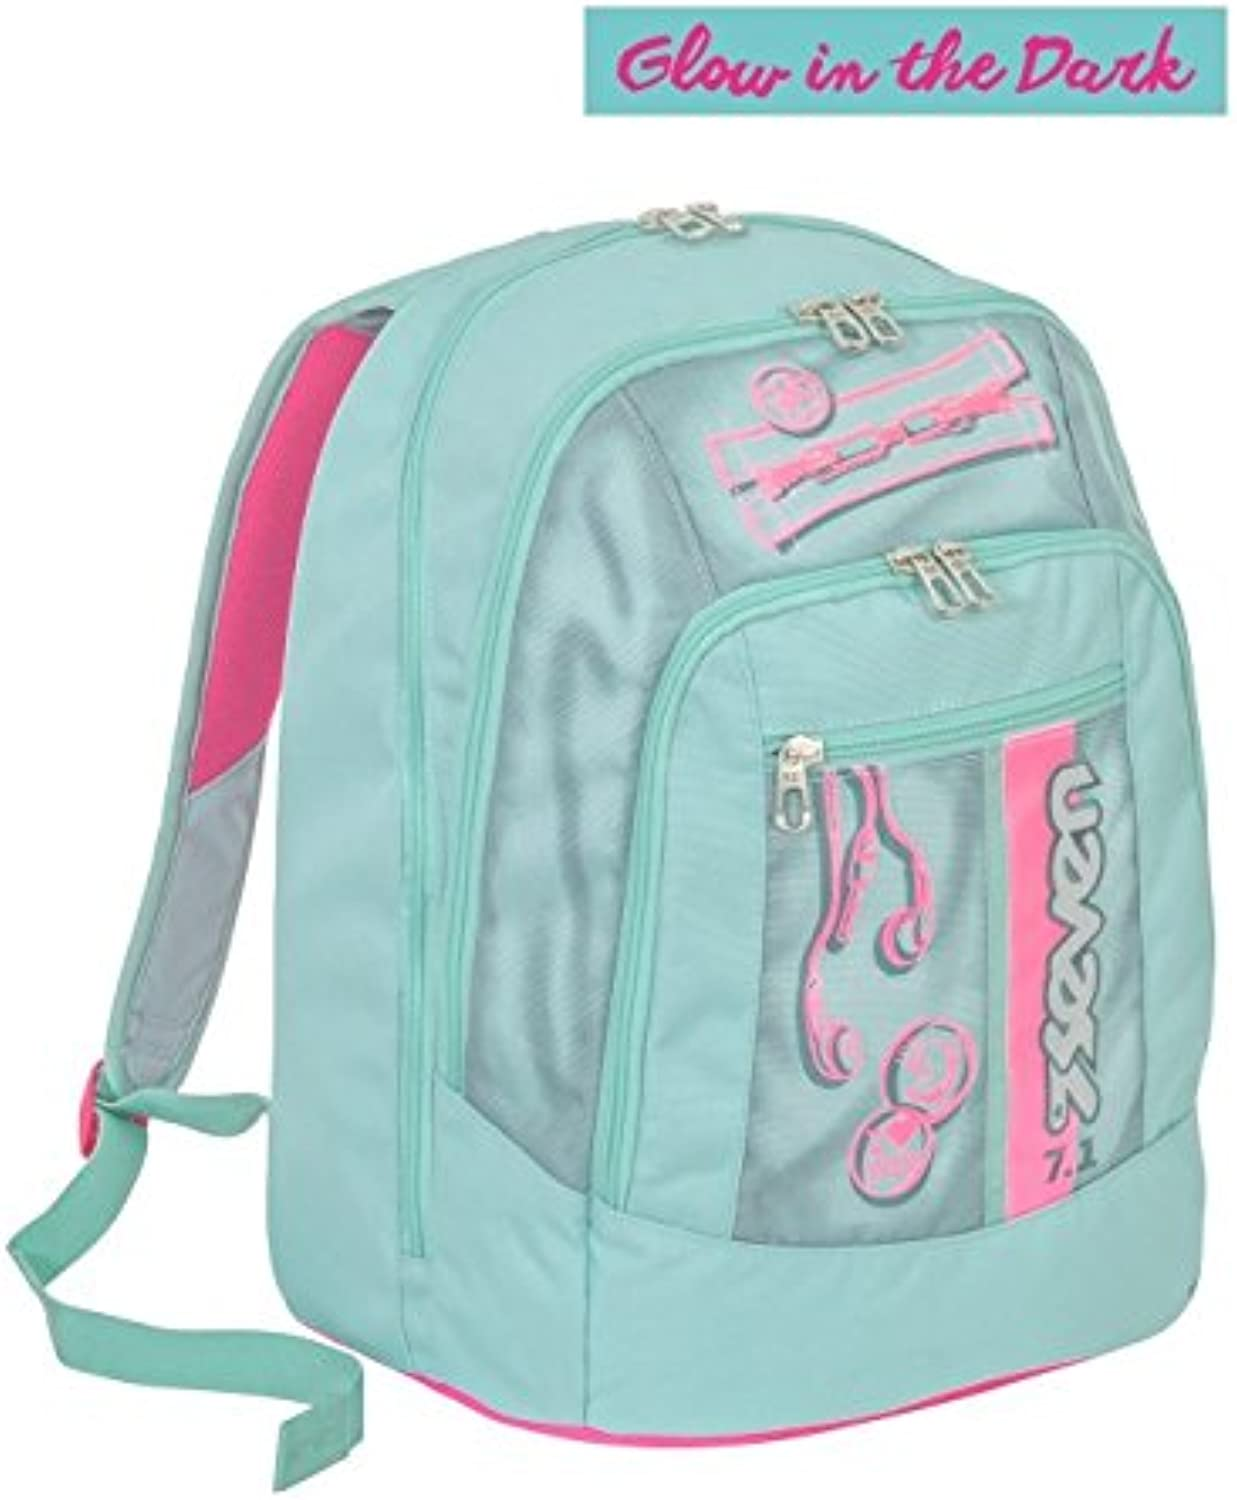 genuina alta calidad Backpack Seven Advanced Advanced Advanced Colorful Girl verde  El nuevo outlet de marcas online.